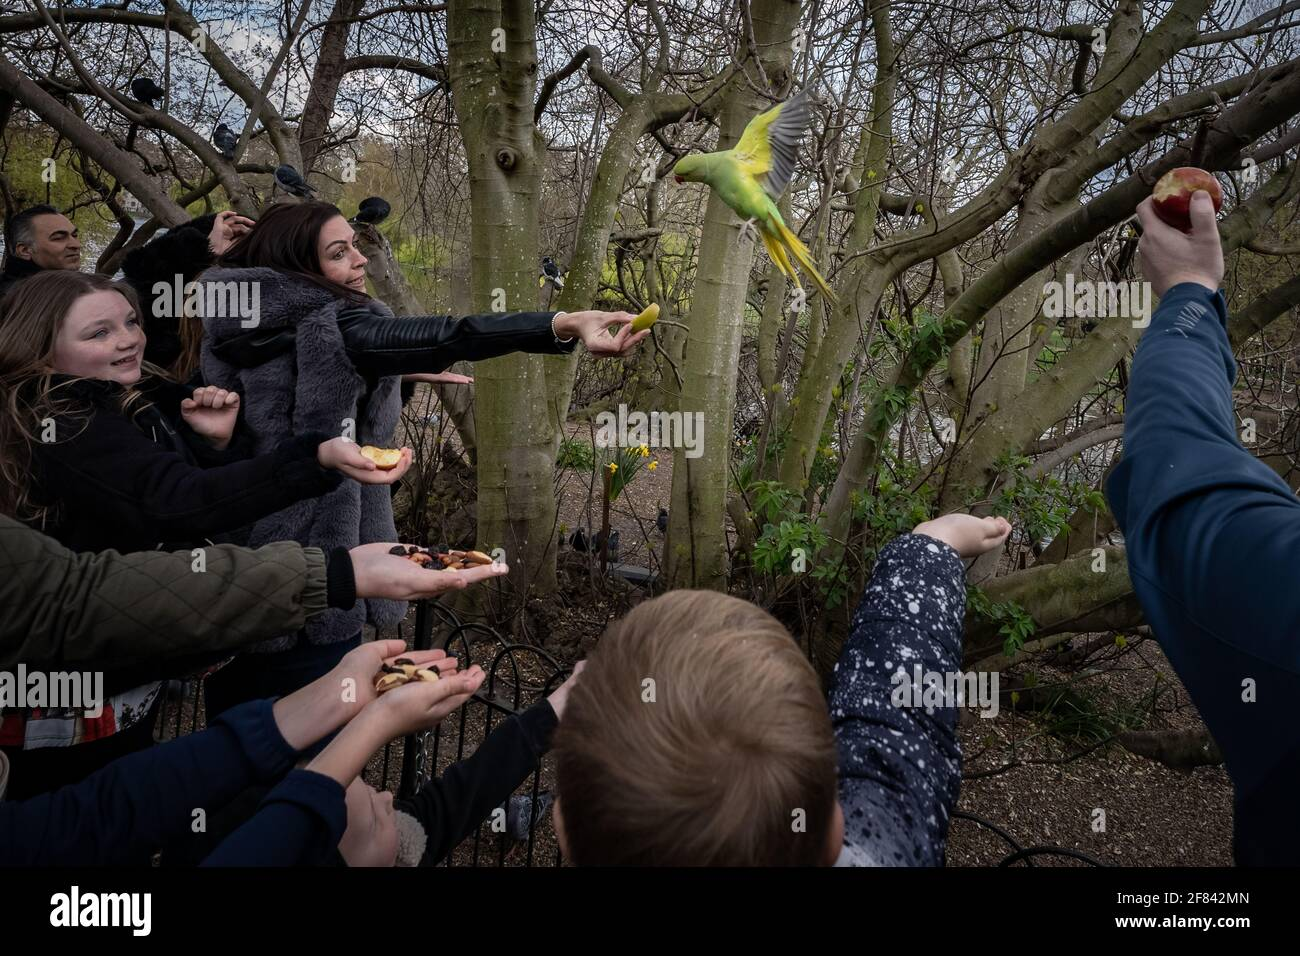 London, UK. 11th April, 2021. UK Weather: Tourists feed the local Ring-Necked Parakeets on a mild Sunday afternoon in St. James's Park. Credit: Guy Corbishley/Alamy Live News Stock Photo